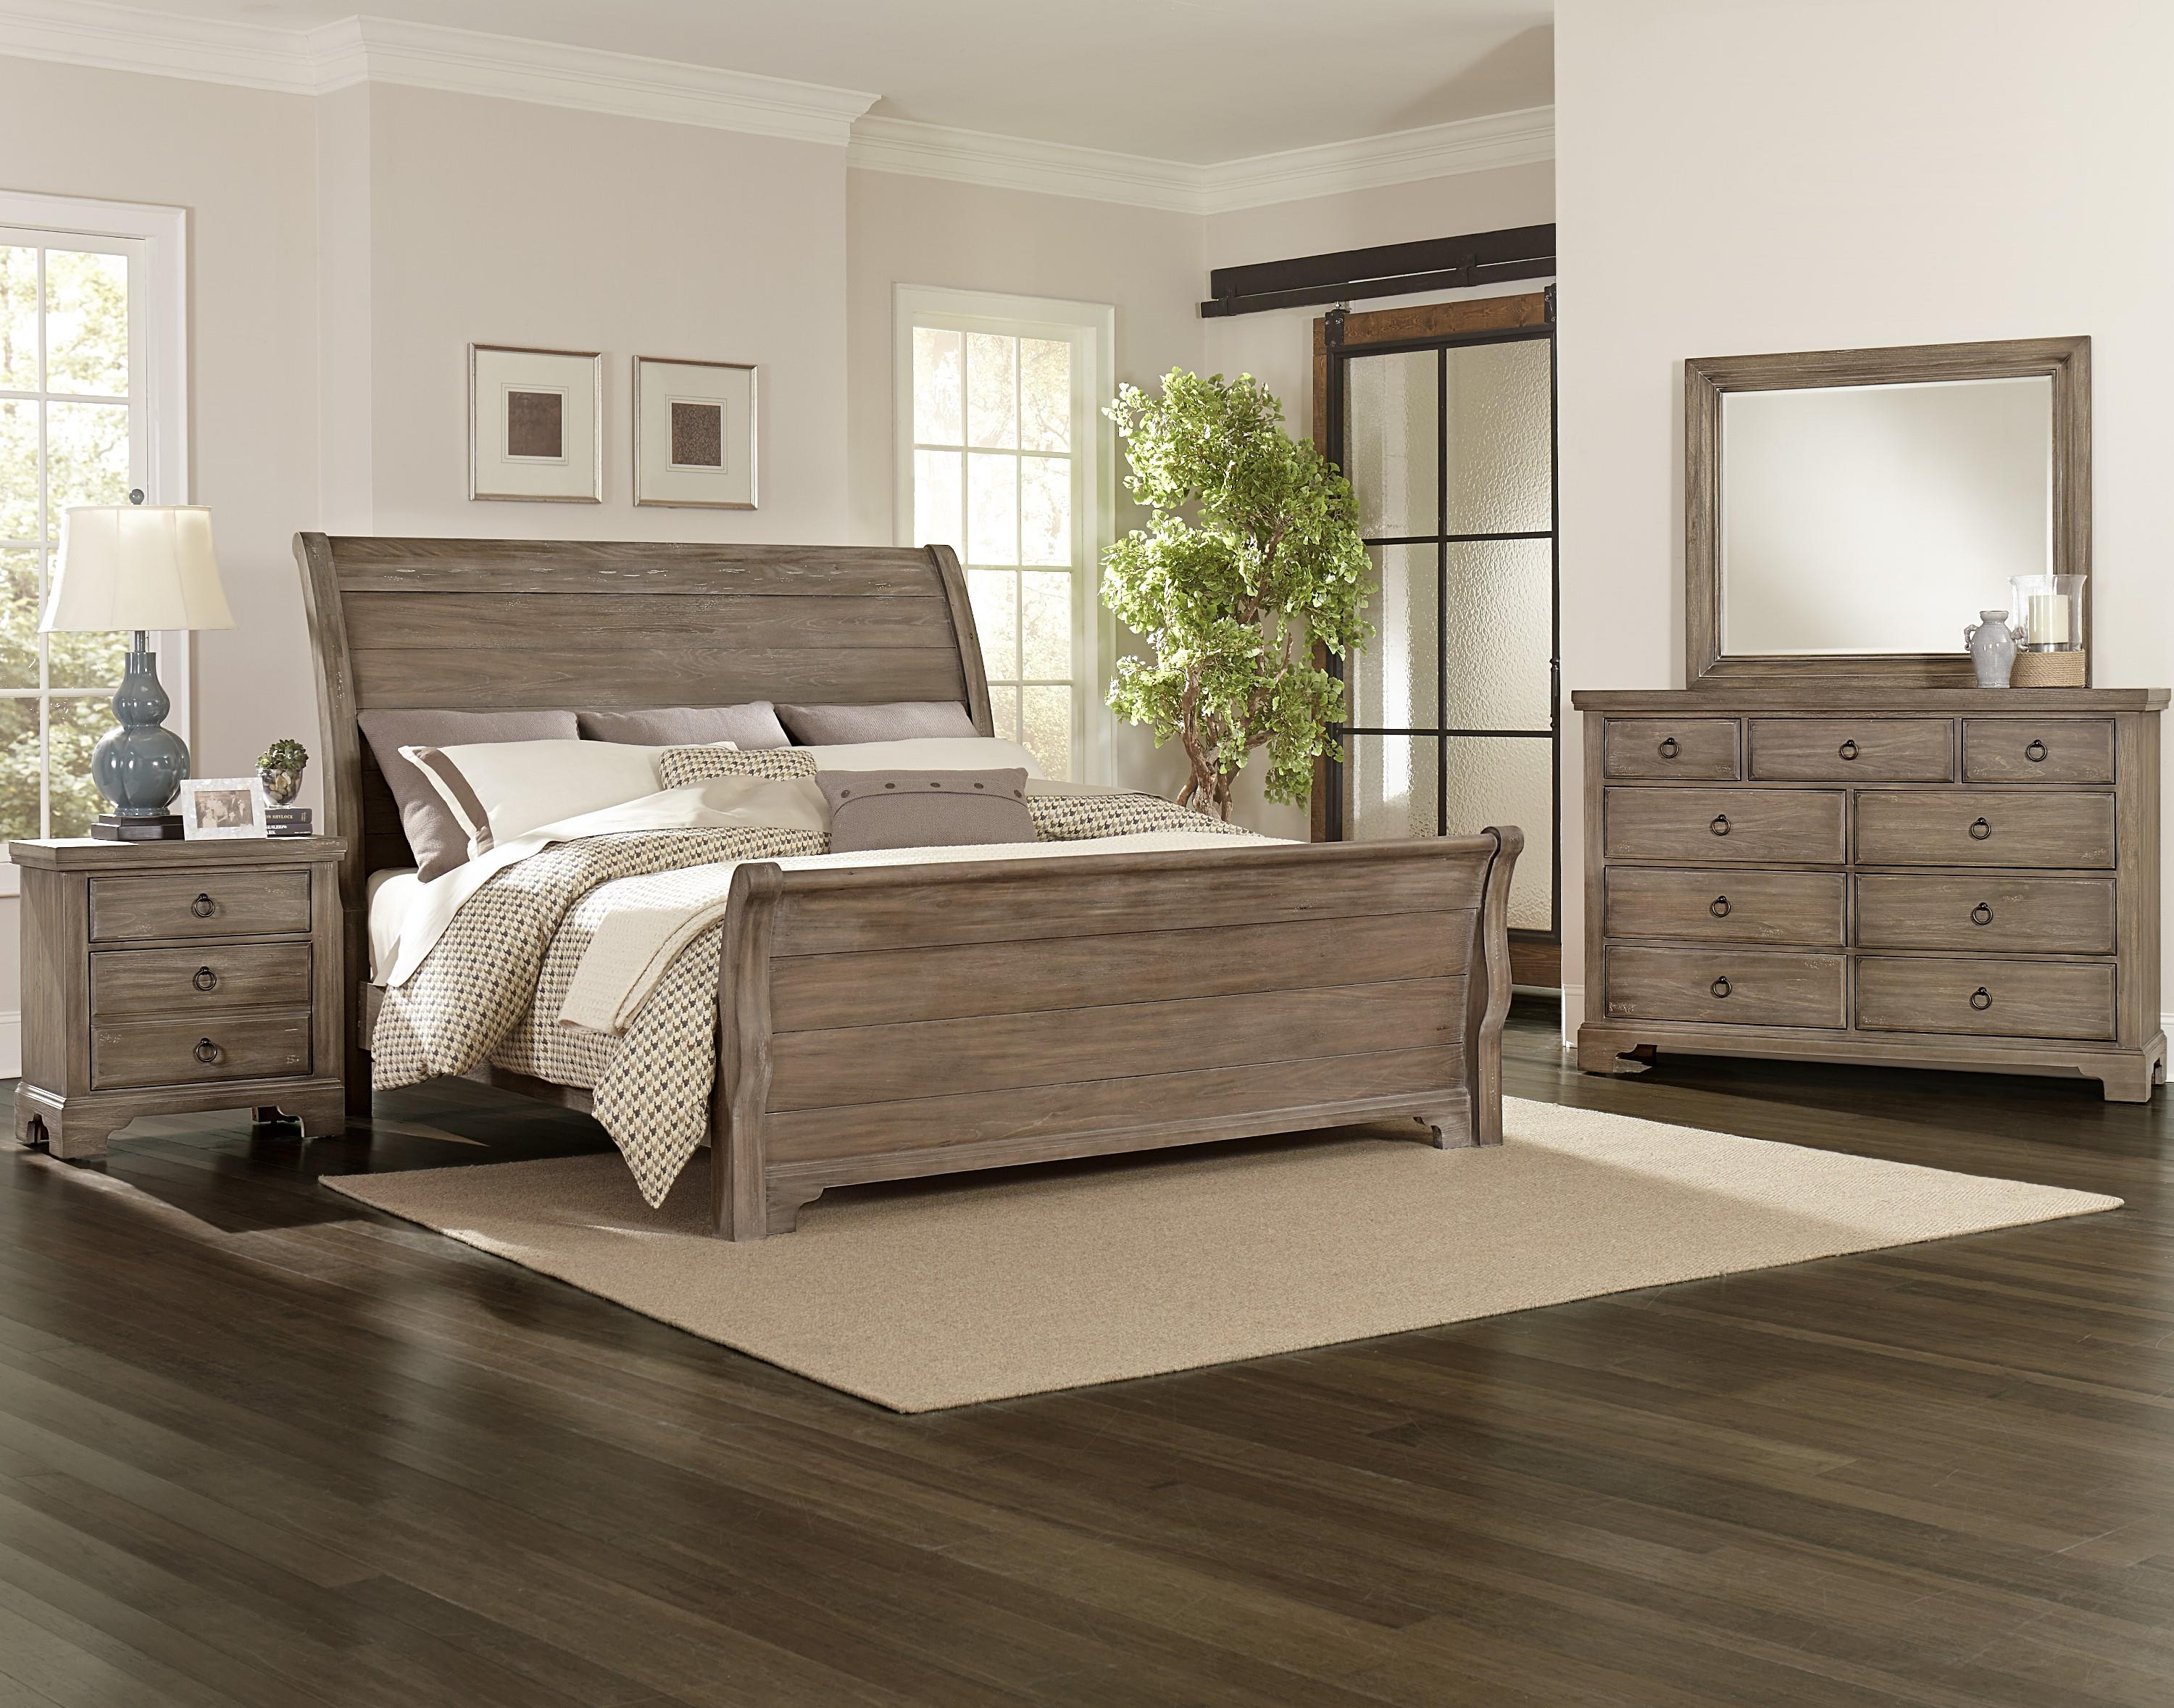 Vaughan Bassett Whiskey Barrel King Bedroom Group - Item Number: 814 K Bedroom Group 1